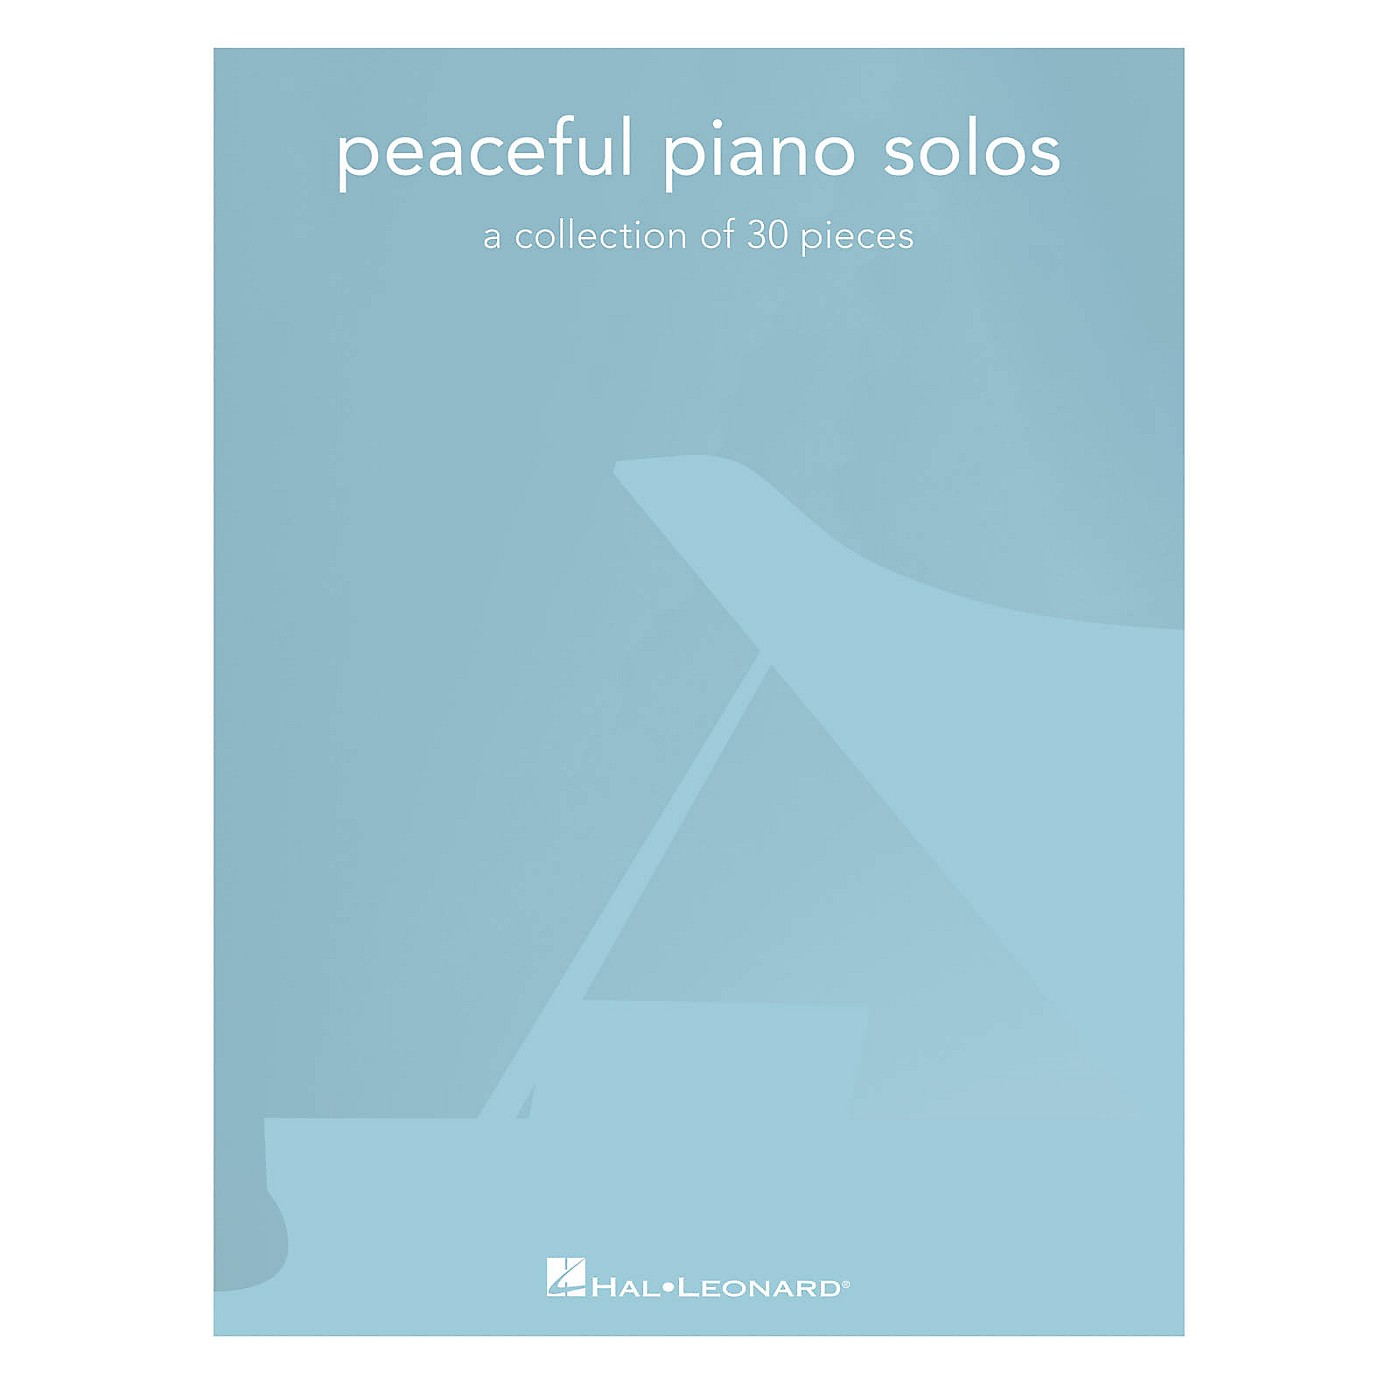 Hal Leonard Peaceful Piano Solos (A Collection of 30 Pieces) Piano Solo Songbook thumbnail